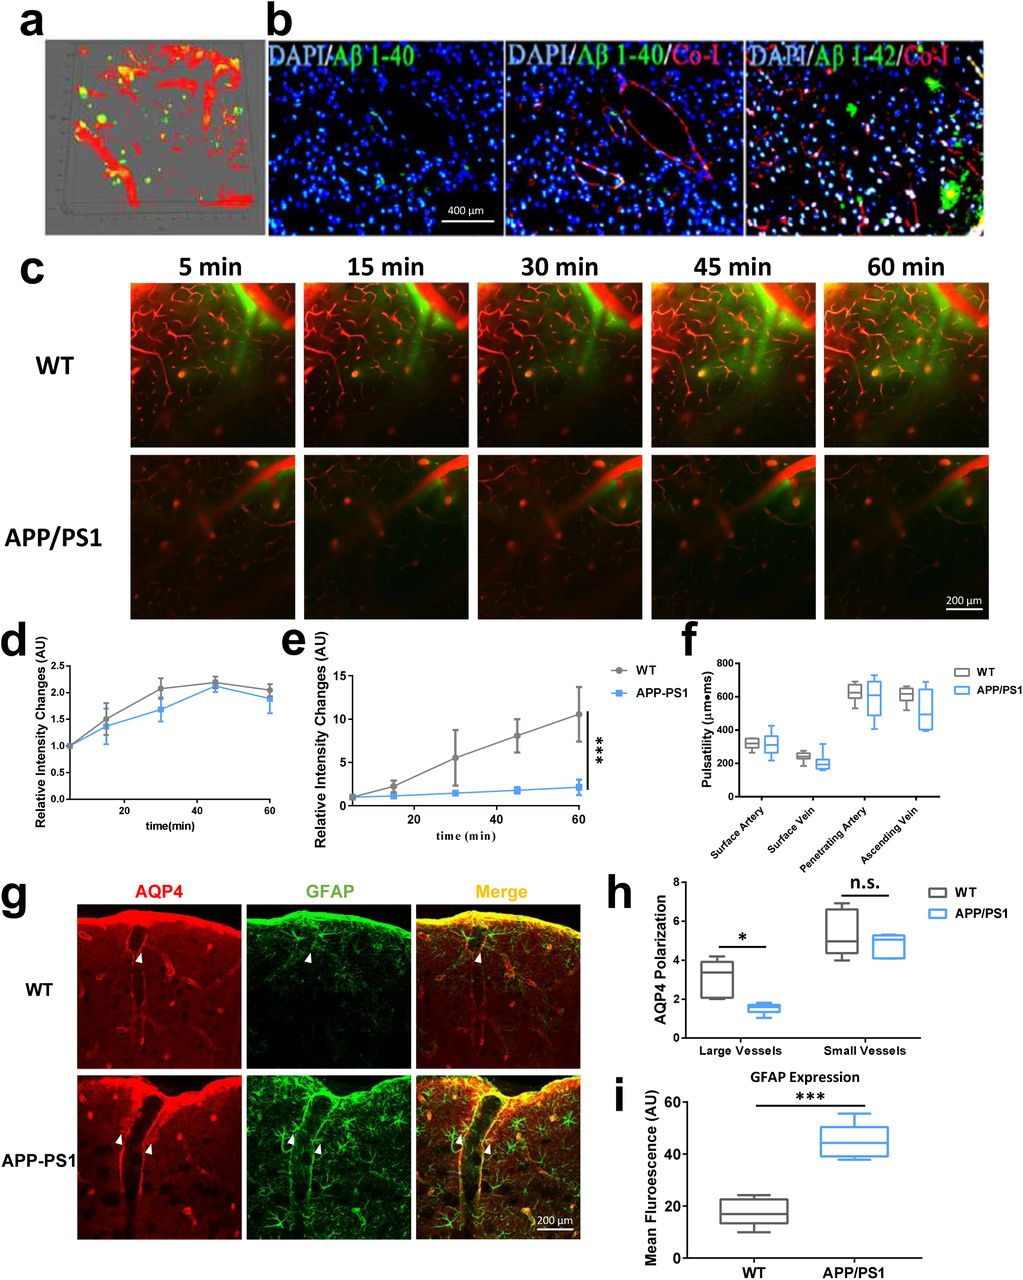 Impairment of glymphatic clearance and deposition of Aβ plaques in APP-PS1 mice. (a) In vivo imaging of Aβ deposition in the cerebral cortex (FSB: green). Aβ deposition was evident in the parenchyma with no distinct CAA. (b) Immunology of Aβ 1–40 and Aβ 1–42 in APP-PS1. Significant numbers of Aβ 1–42-labeled amyloid plaques were observed in the parenchyma, but no marked deposition of Aβ 1–40. (c) Representative images of paravascular CSF tracer clearance at 100 μm below the cortical surface in APP-PS1 indicating severe impairment in penetration of fluorescence tracer (e) while no changes in paravascular movement was observed (d). (h-i) Expression of AQP4 and GFAP in cortex and hippocampus. Compared with WT control mice, APP-PS1 mice displayed significant decrease in AQP4 polarization and exhibited a marked increase in GFAP expression in the cortex (n=6 mice per group). No significant pulsatility changes were observed between APP-PS1 and WT control mice (f) (n=7-8 vessels per group).